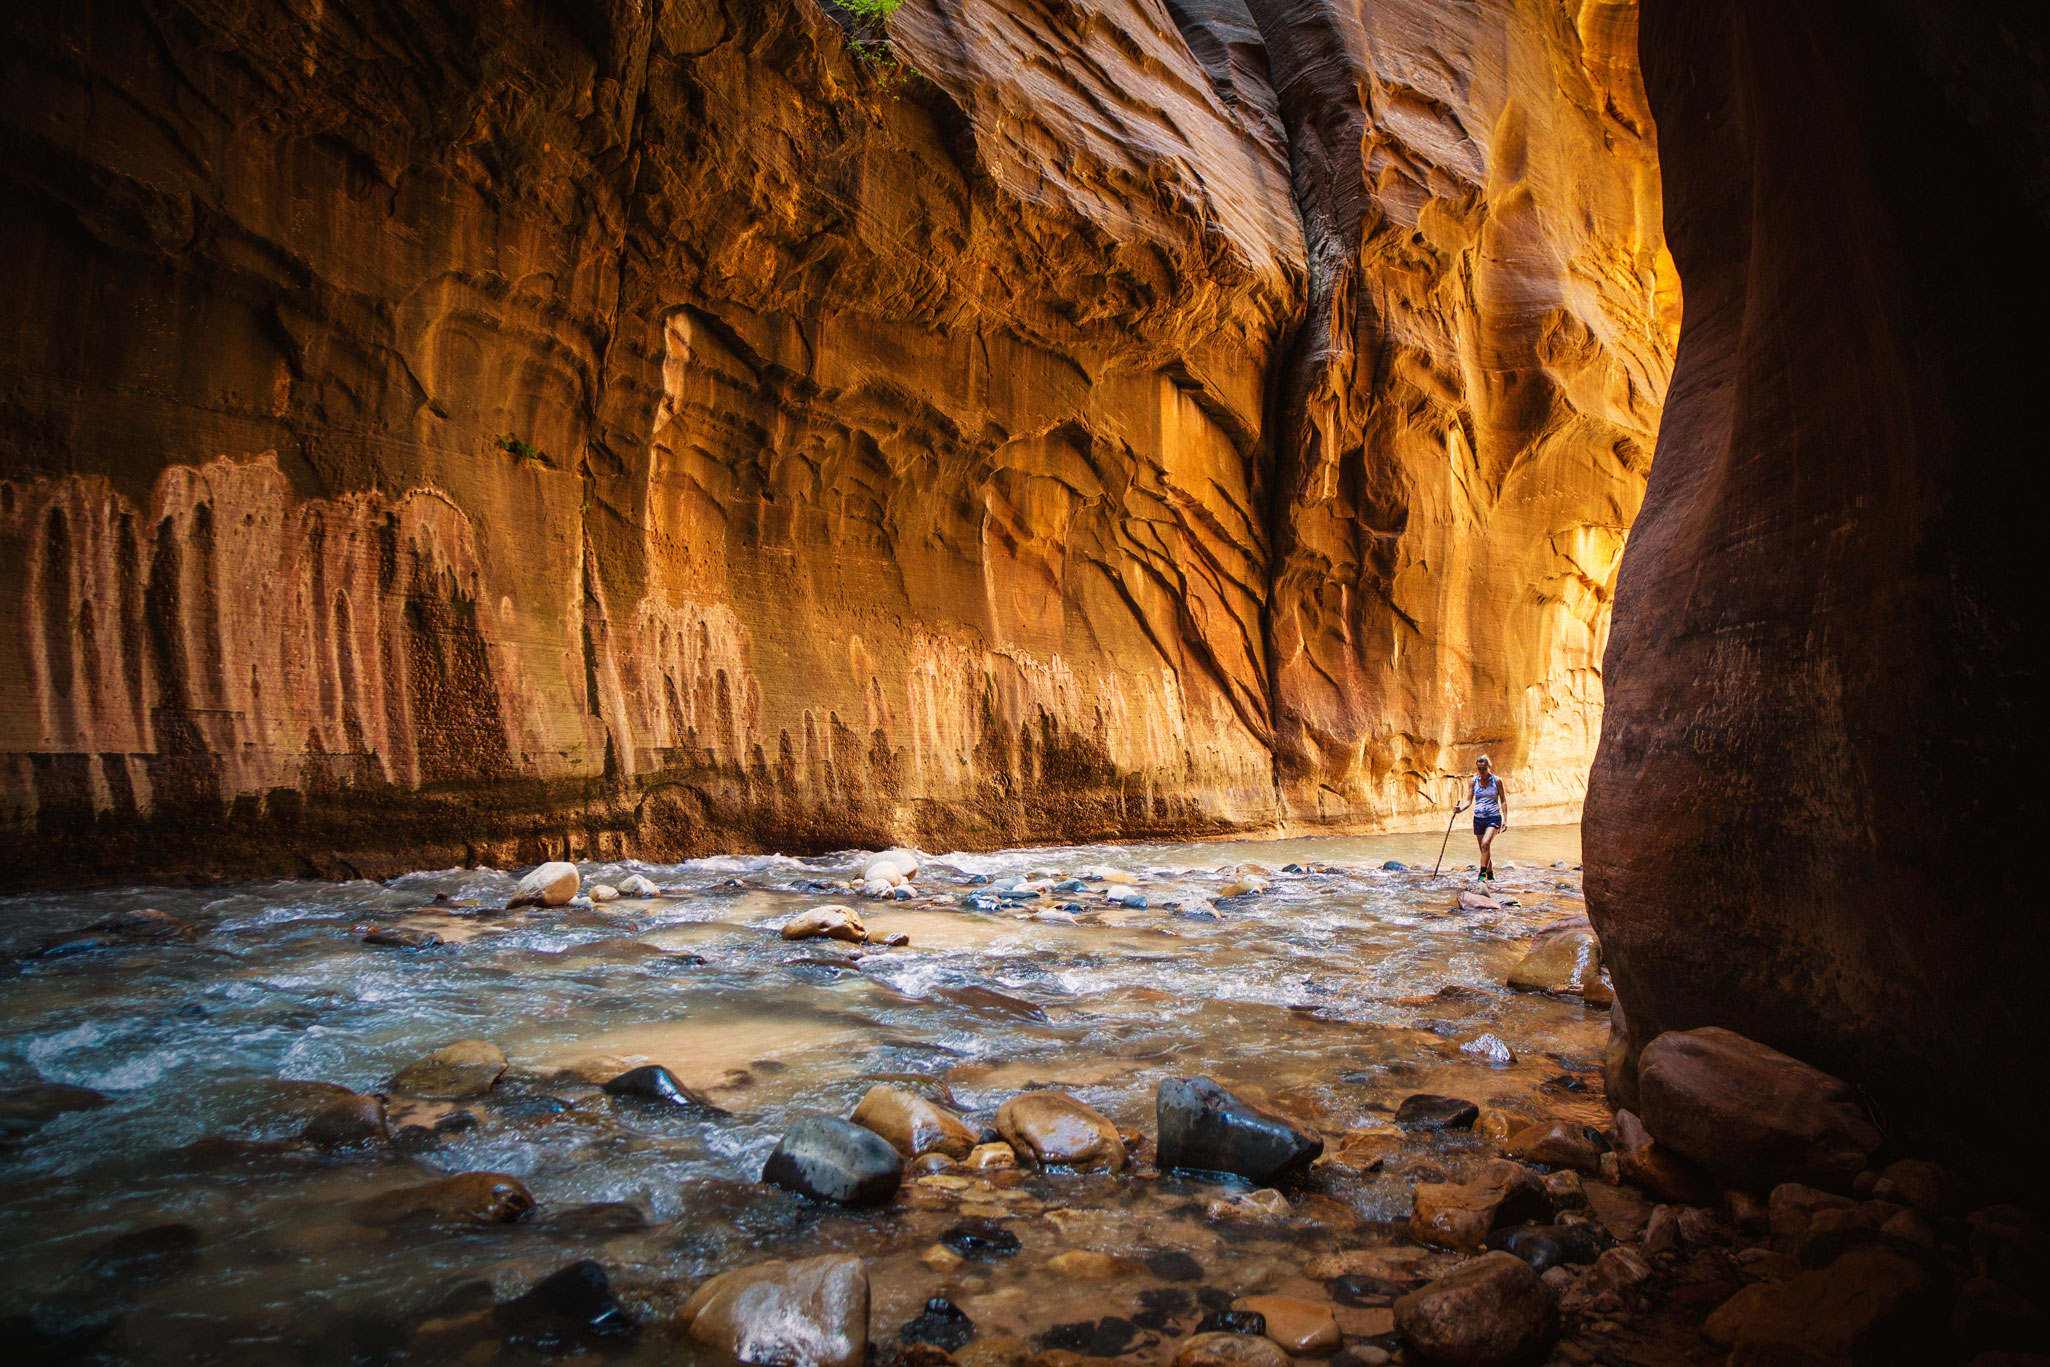 ZION NATIONAL PARK / THE NARROWS